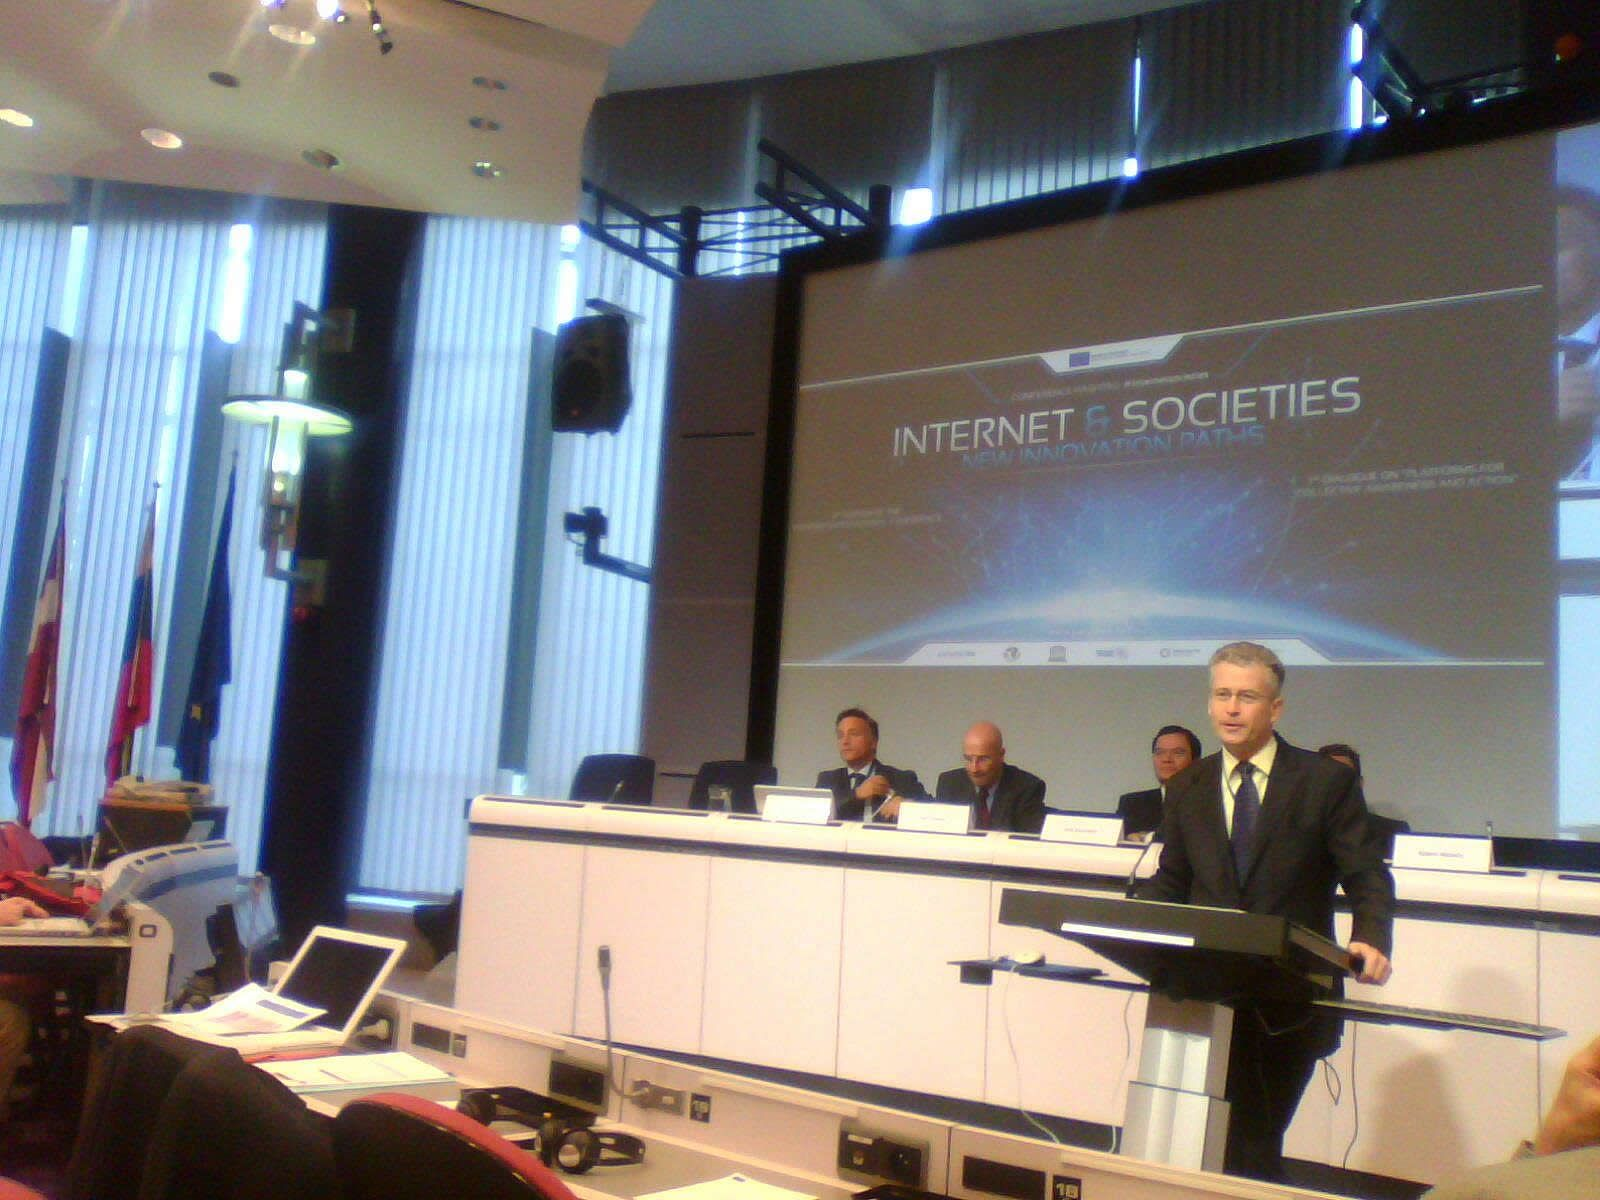 ICT building resilience within societies, Robert Madelin (EC DG Infso)